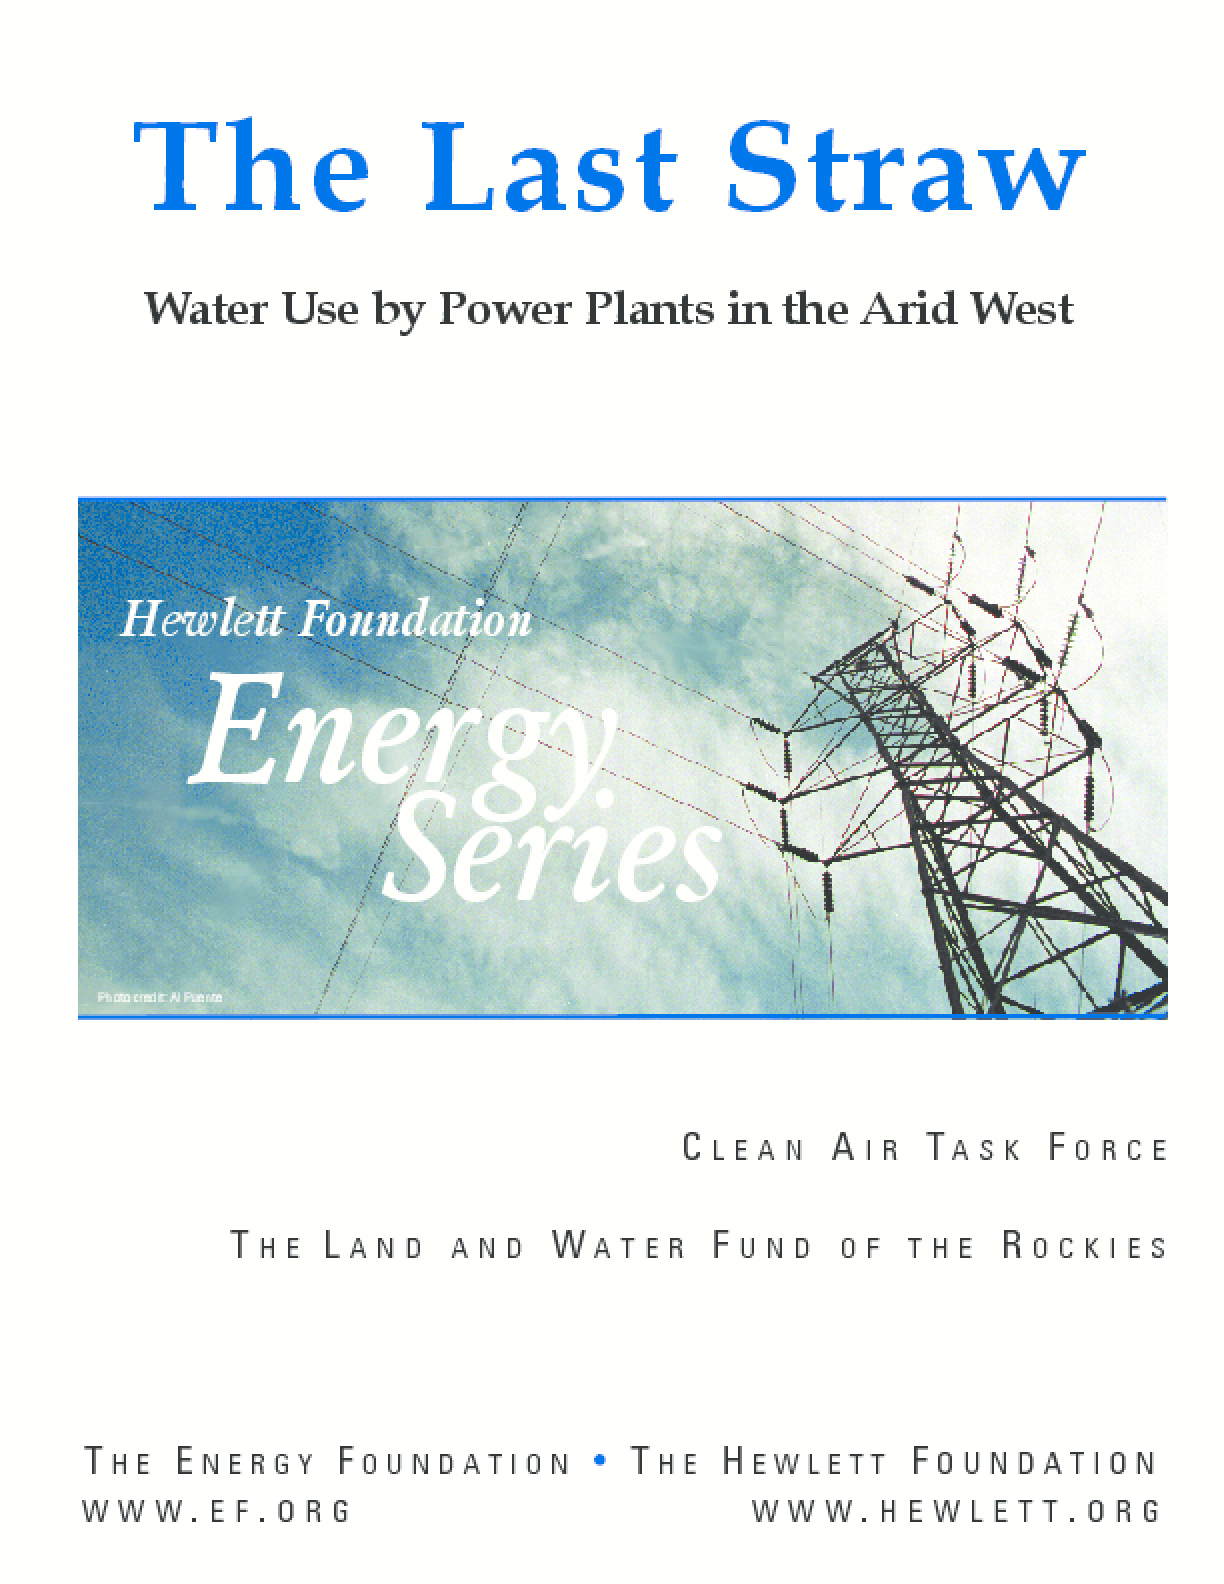 The Last Straw: Water Use by Power Plants in the Arid West